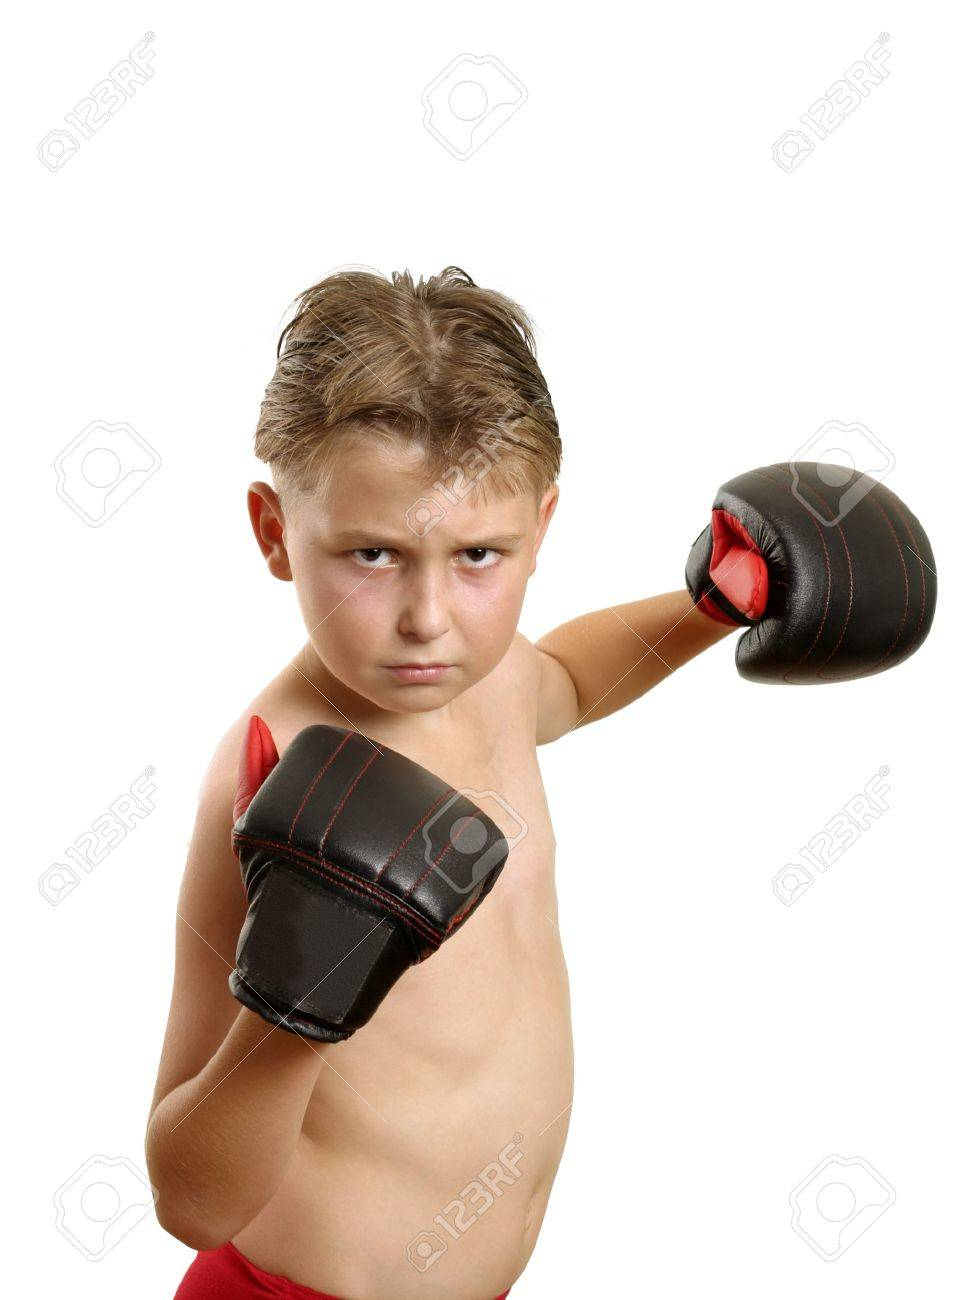 Boy in boxing gloves throwing some punches. Stock Photo - 6141270